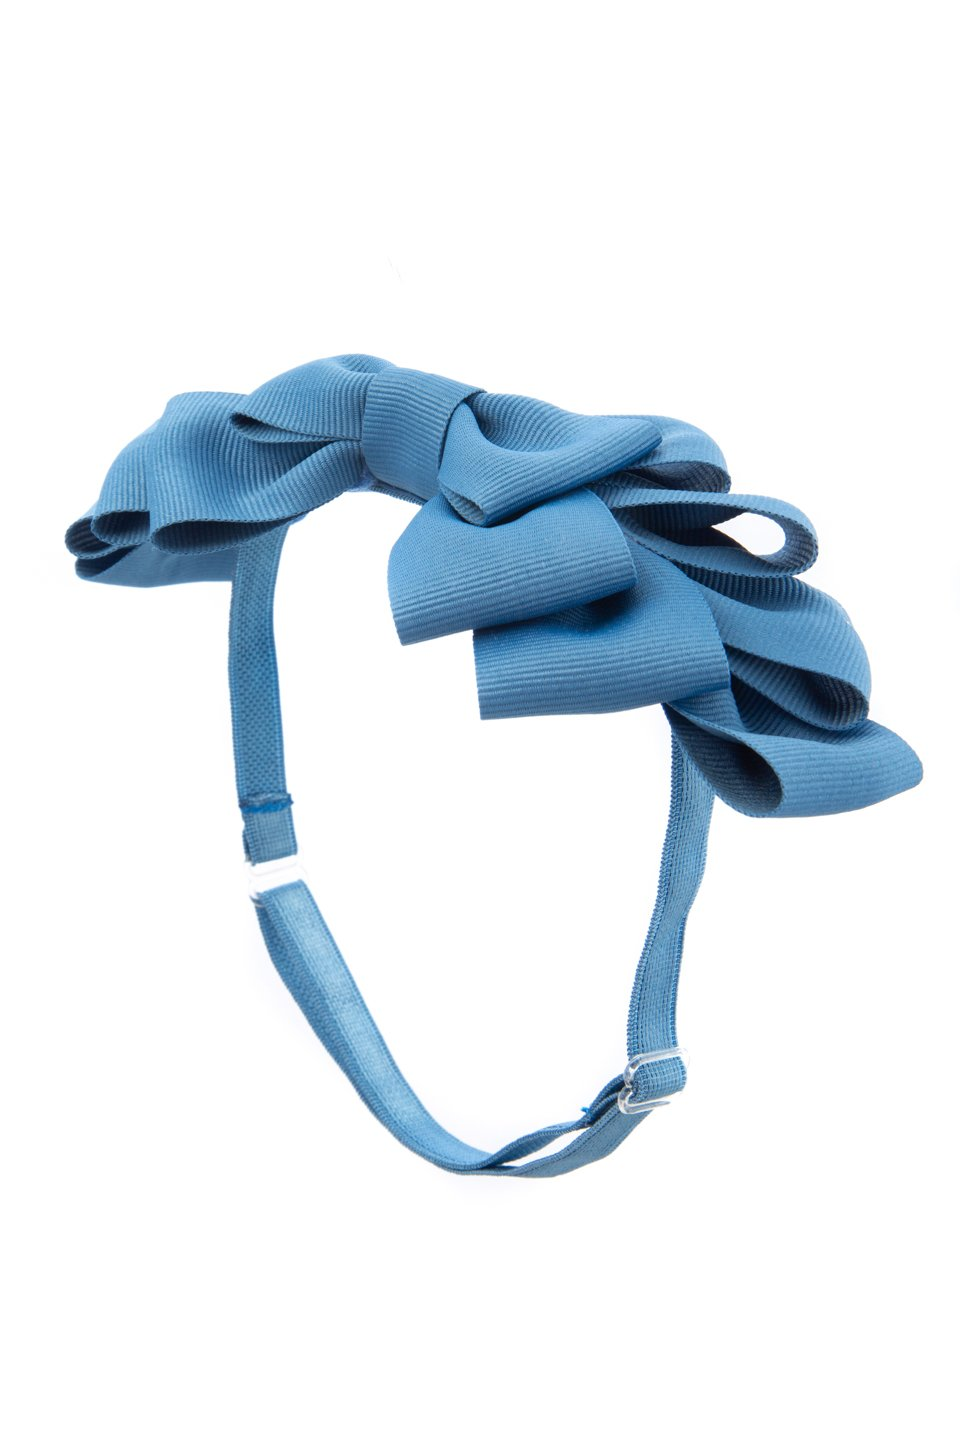 Pleated Ribbon Grosgrain Wrap - Smoke Blue - PROJECT 6, modest fashion